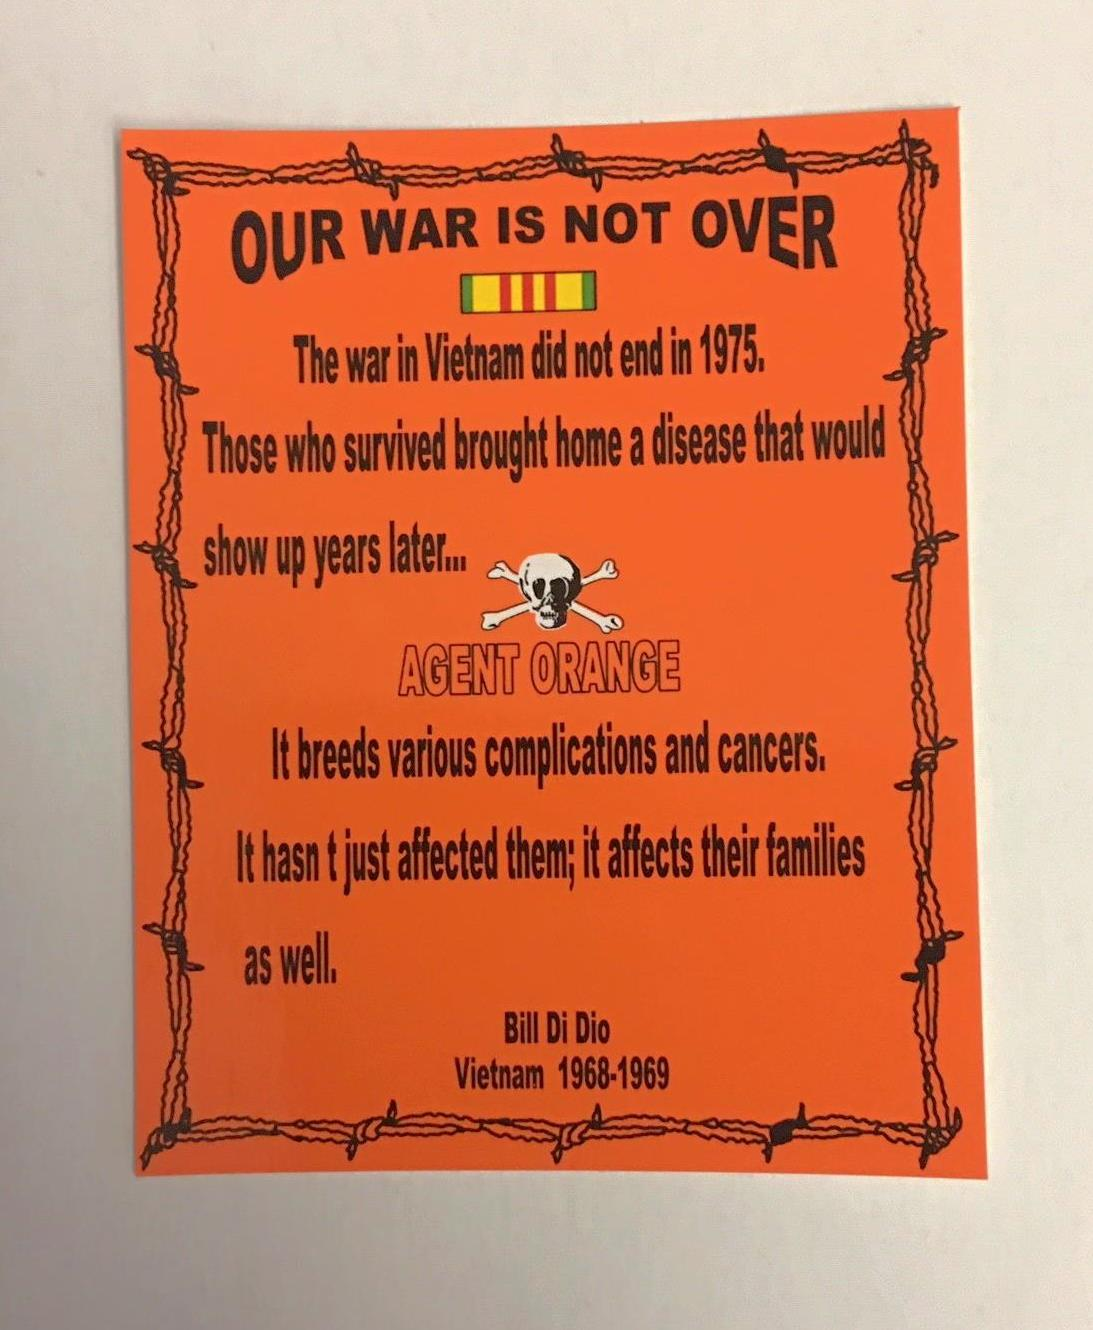 AGENT ORANGE OUR WAR IS NOT OVER STICKERS